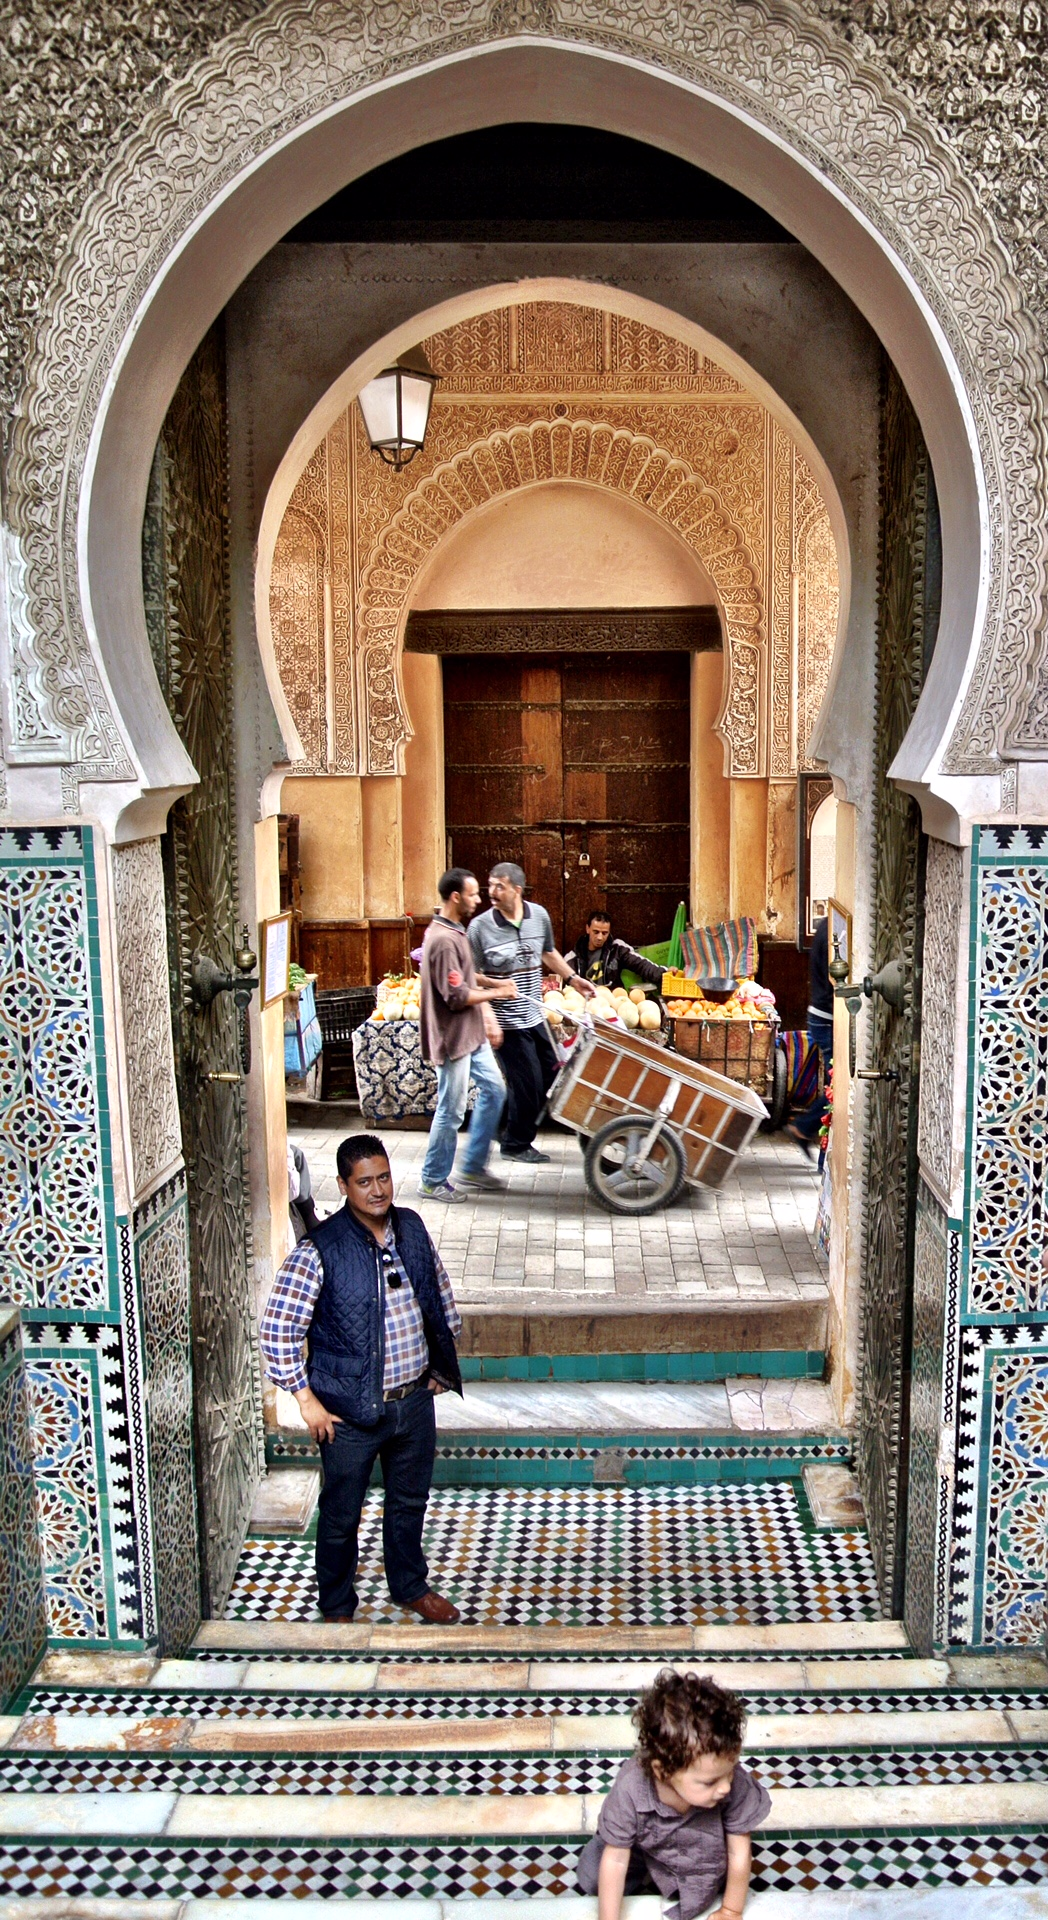 Our excellent guide, Abdul, standing in the medersa doorway